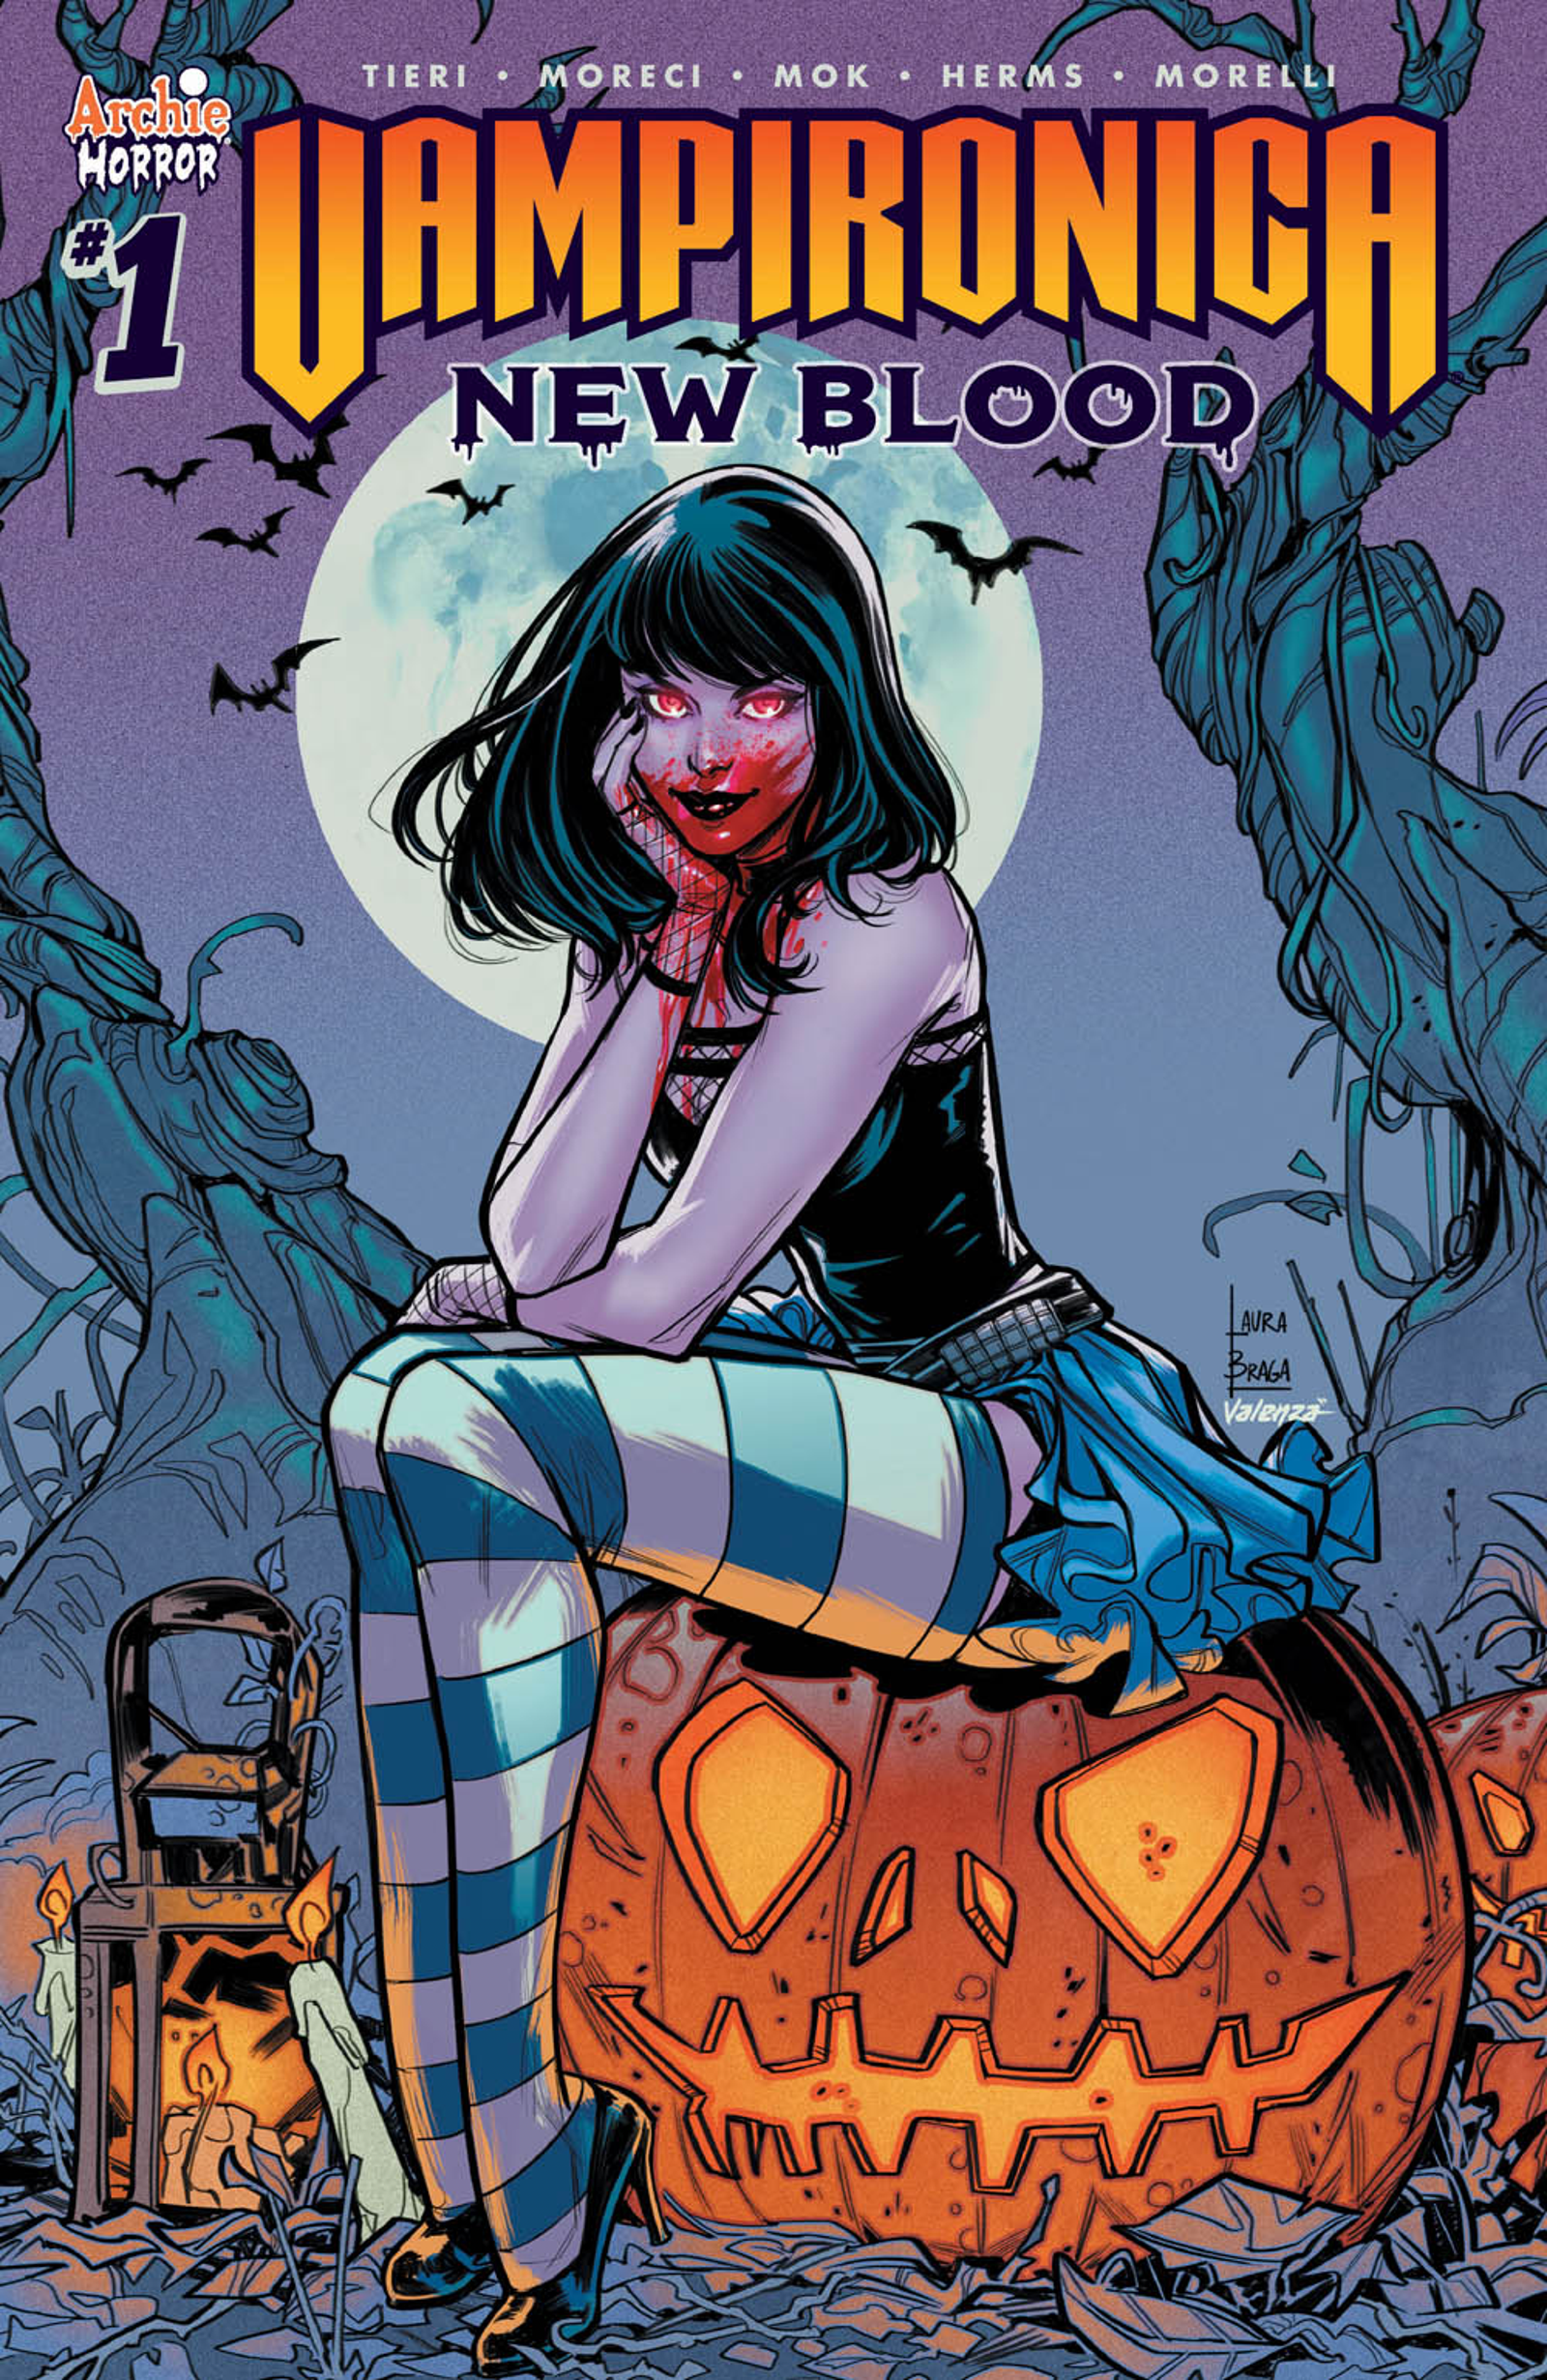 Check out this gallery of variant covers for Vampironica: New Blood #1, making their debuts exclusively on io9!